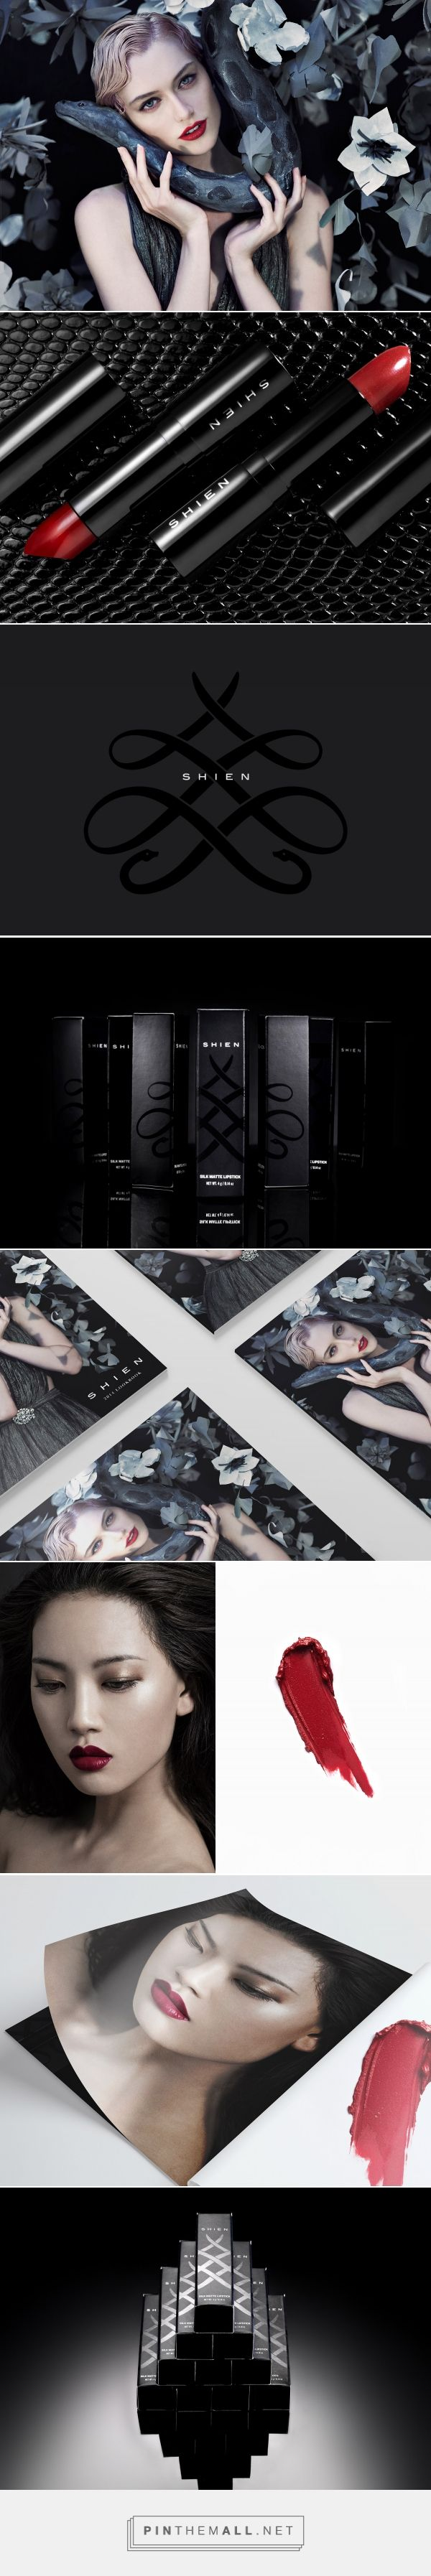 Shien Cosmetics Branding by We Are Branch